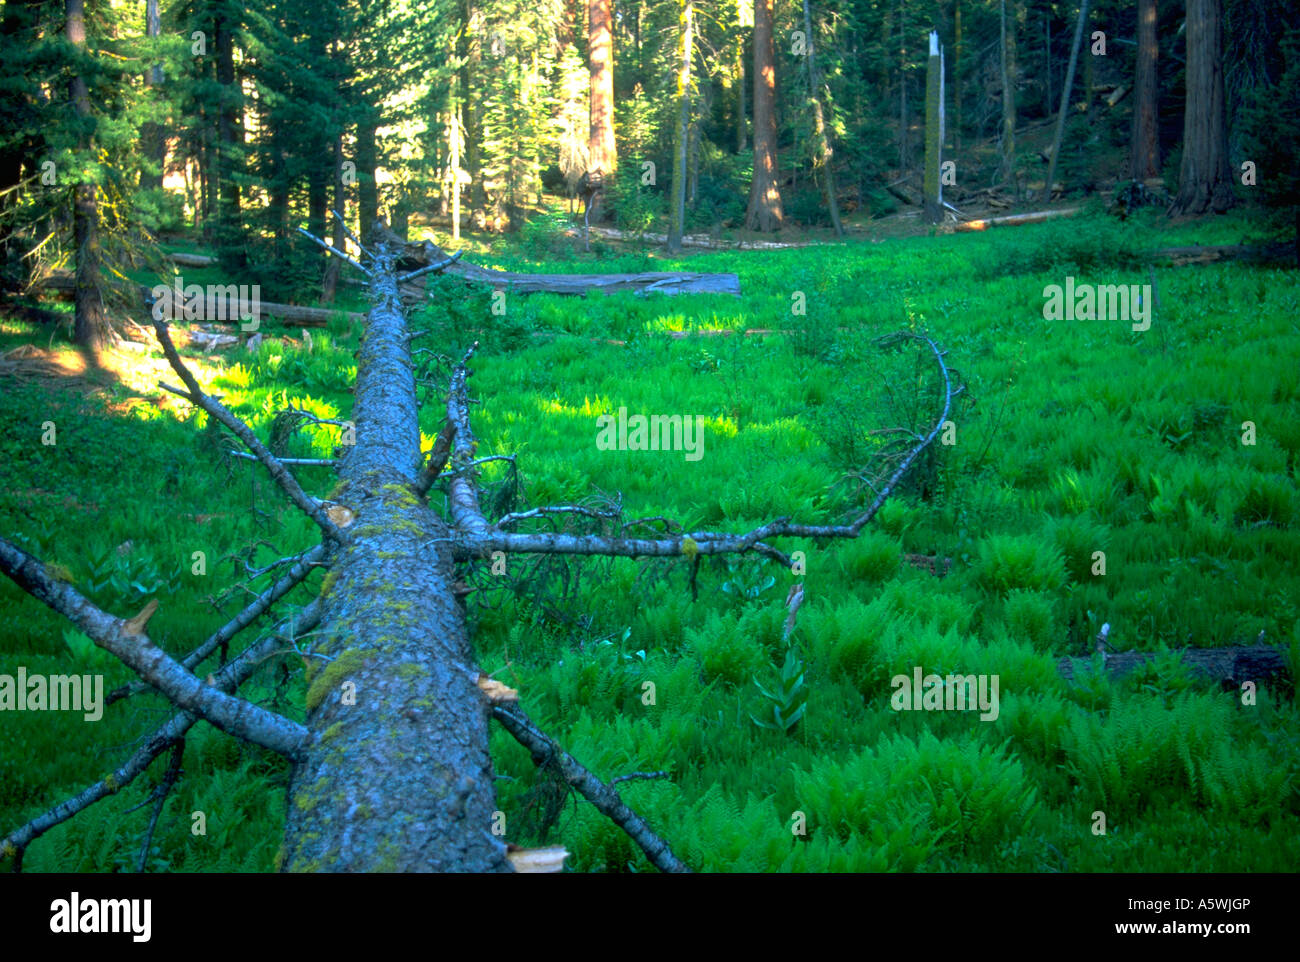 Painet hk2390 fallen tree sequoia forrest national park ca dead growth fall laying nature lying green - Stock Image